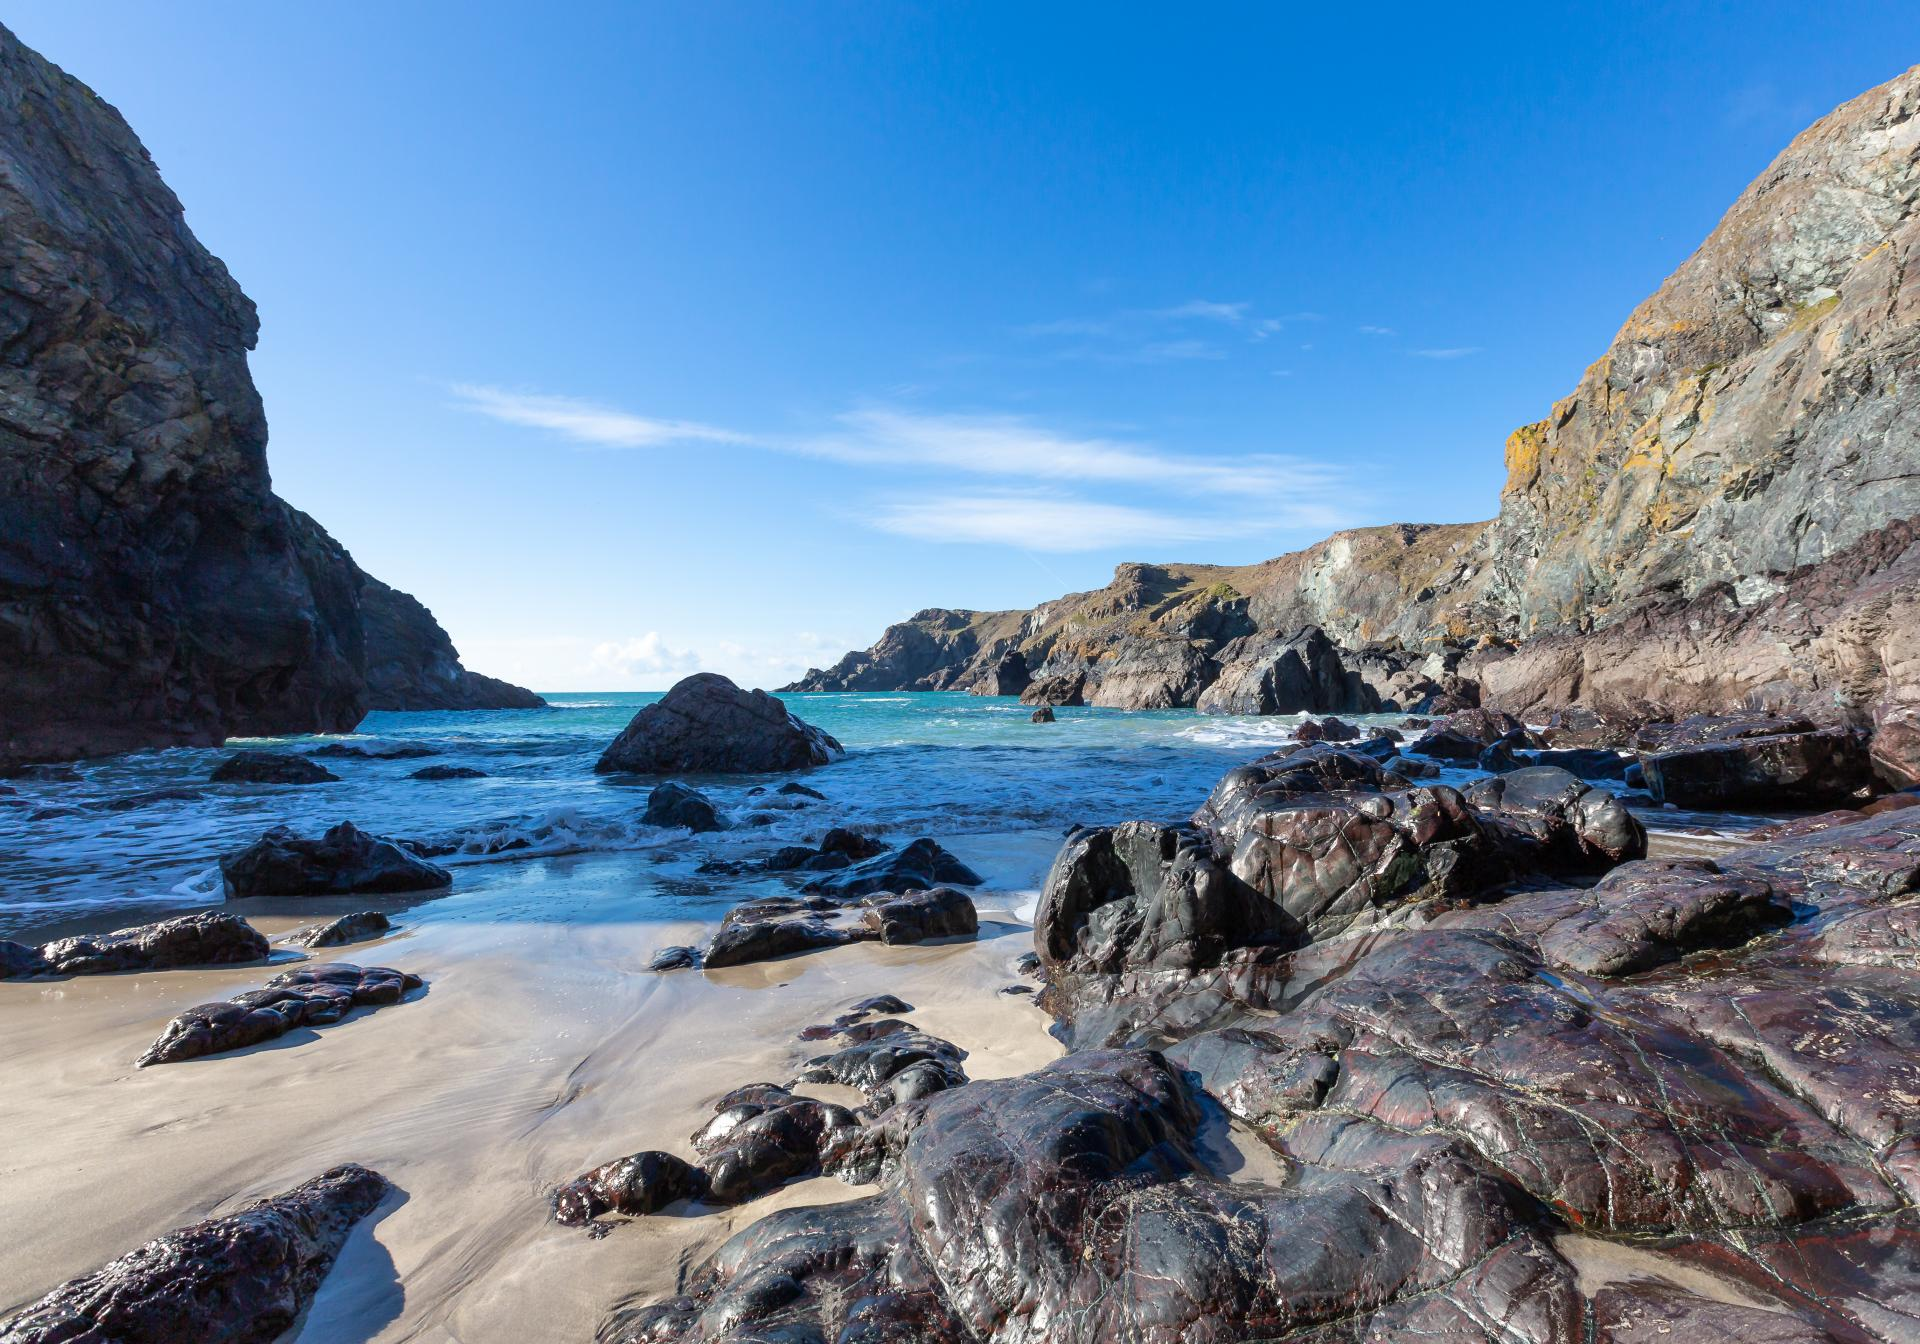 Kynance Cove at low tide taken from the shoreline looking out to sea, Liane Ryan Photography